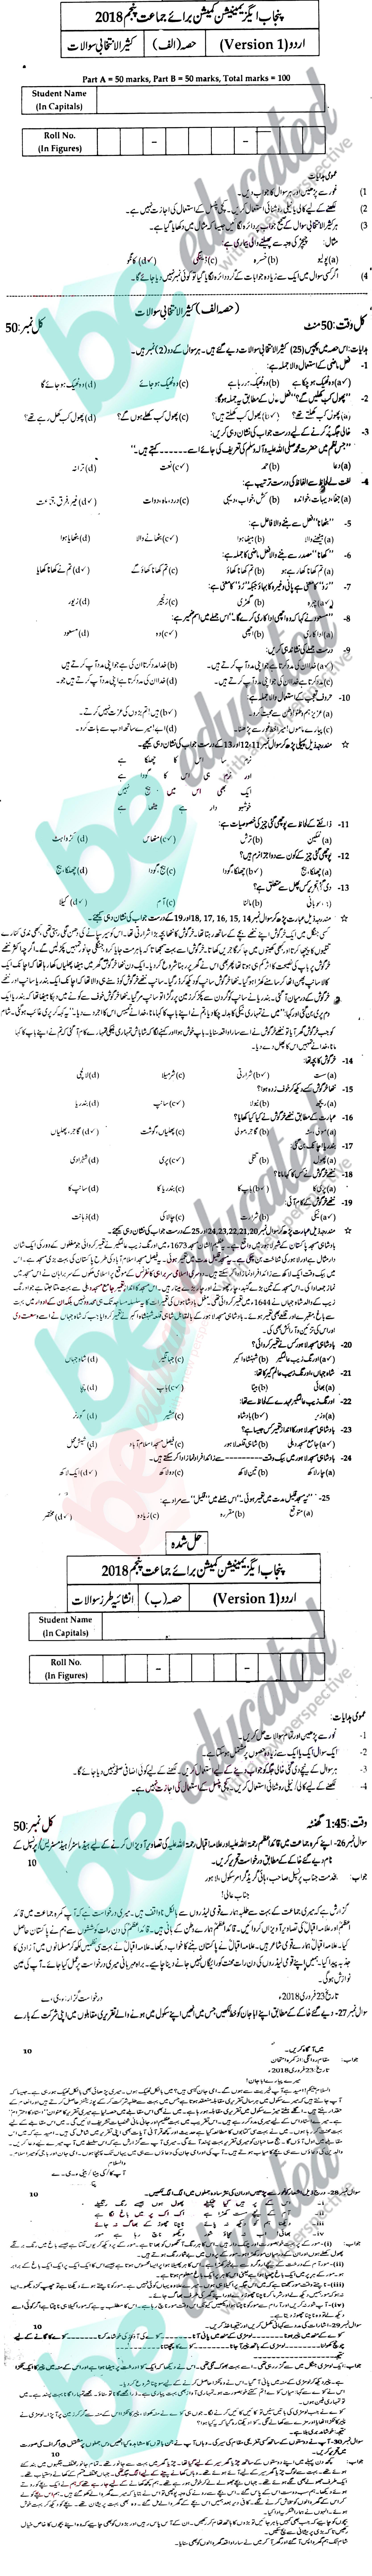 Urdu 5th Class Past Paper 2018